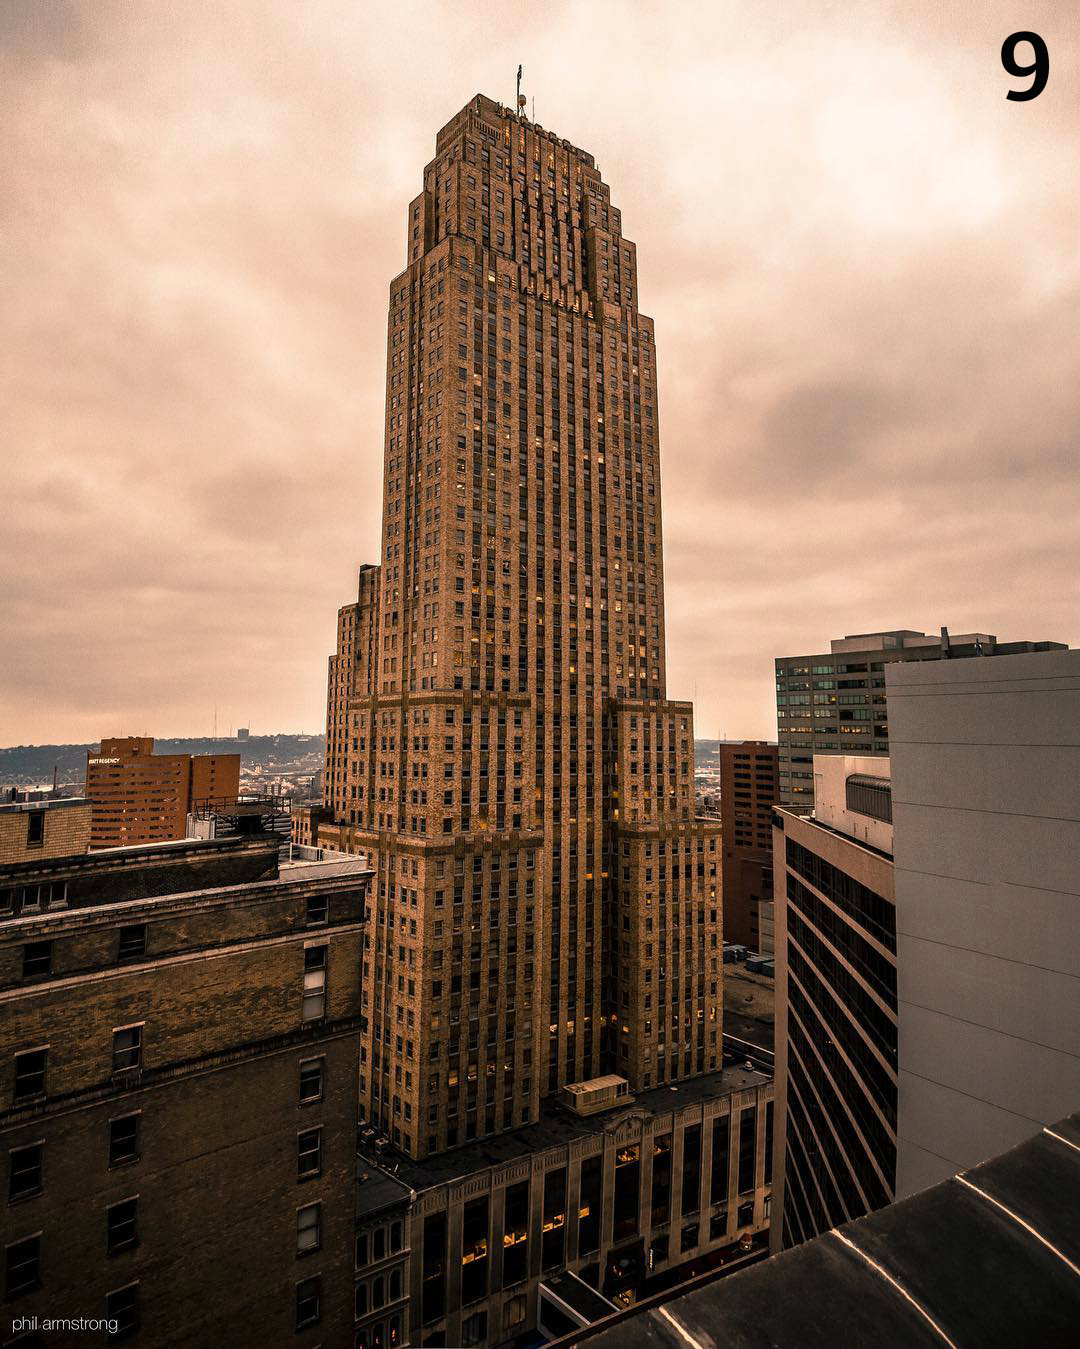 #9 - Built in 1931 and standing at 534 feet and 49 floors, the Carew Tower is the second tallest building in Cincinnati. / Image: Phil Armstrong